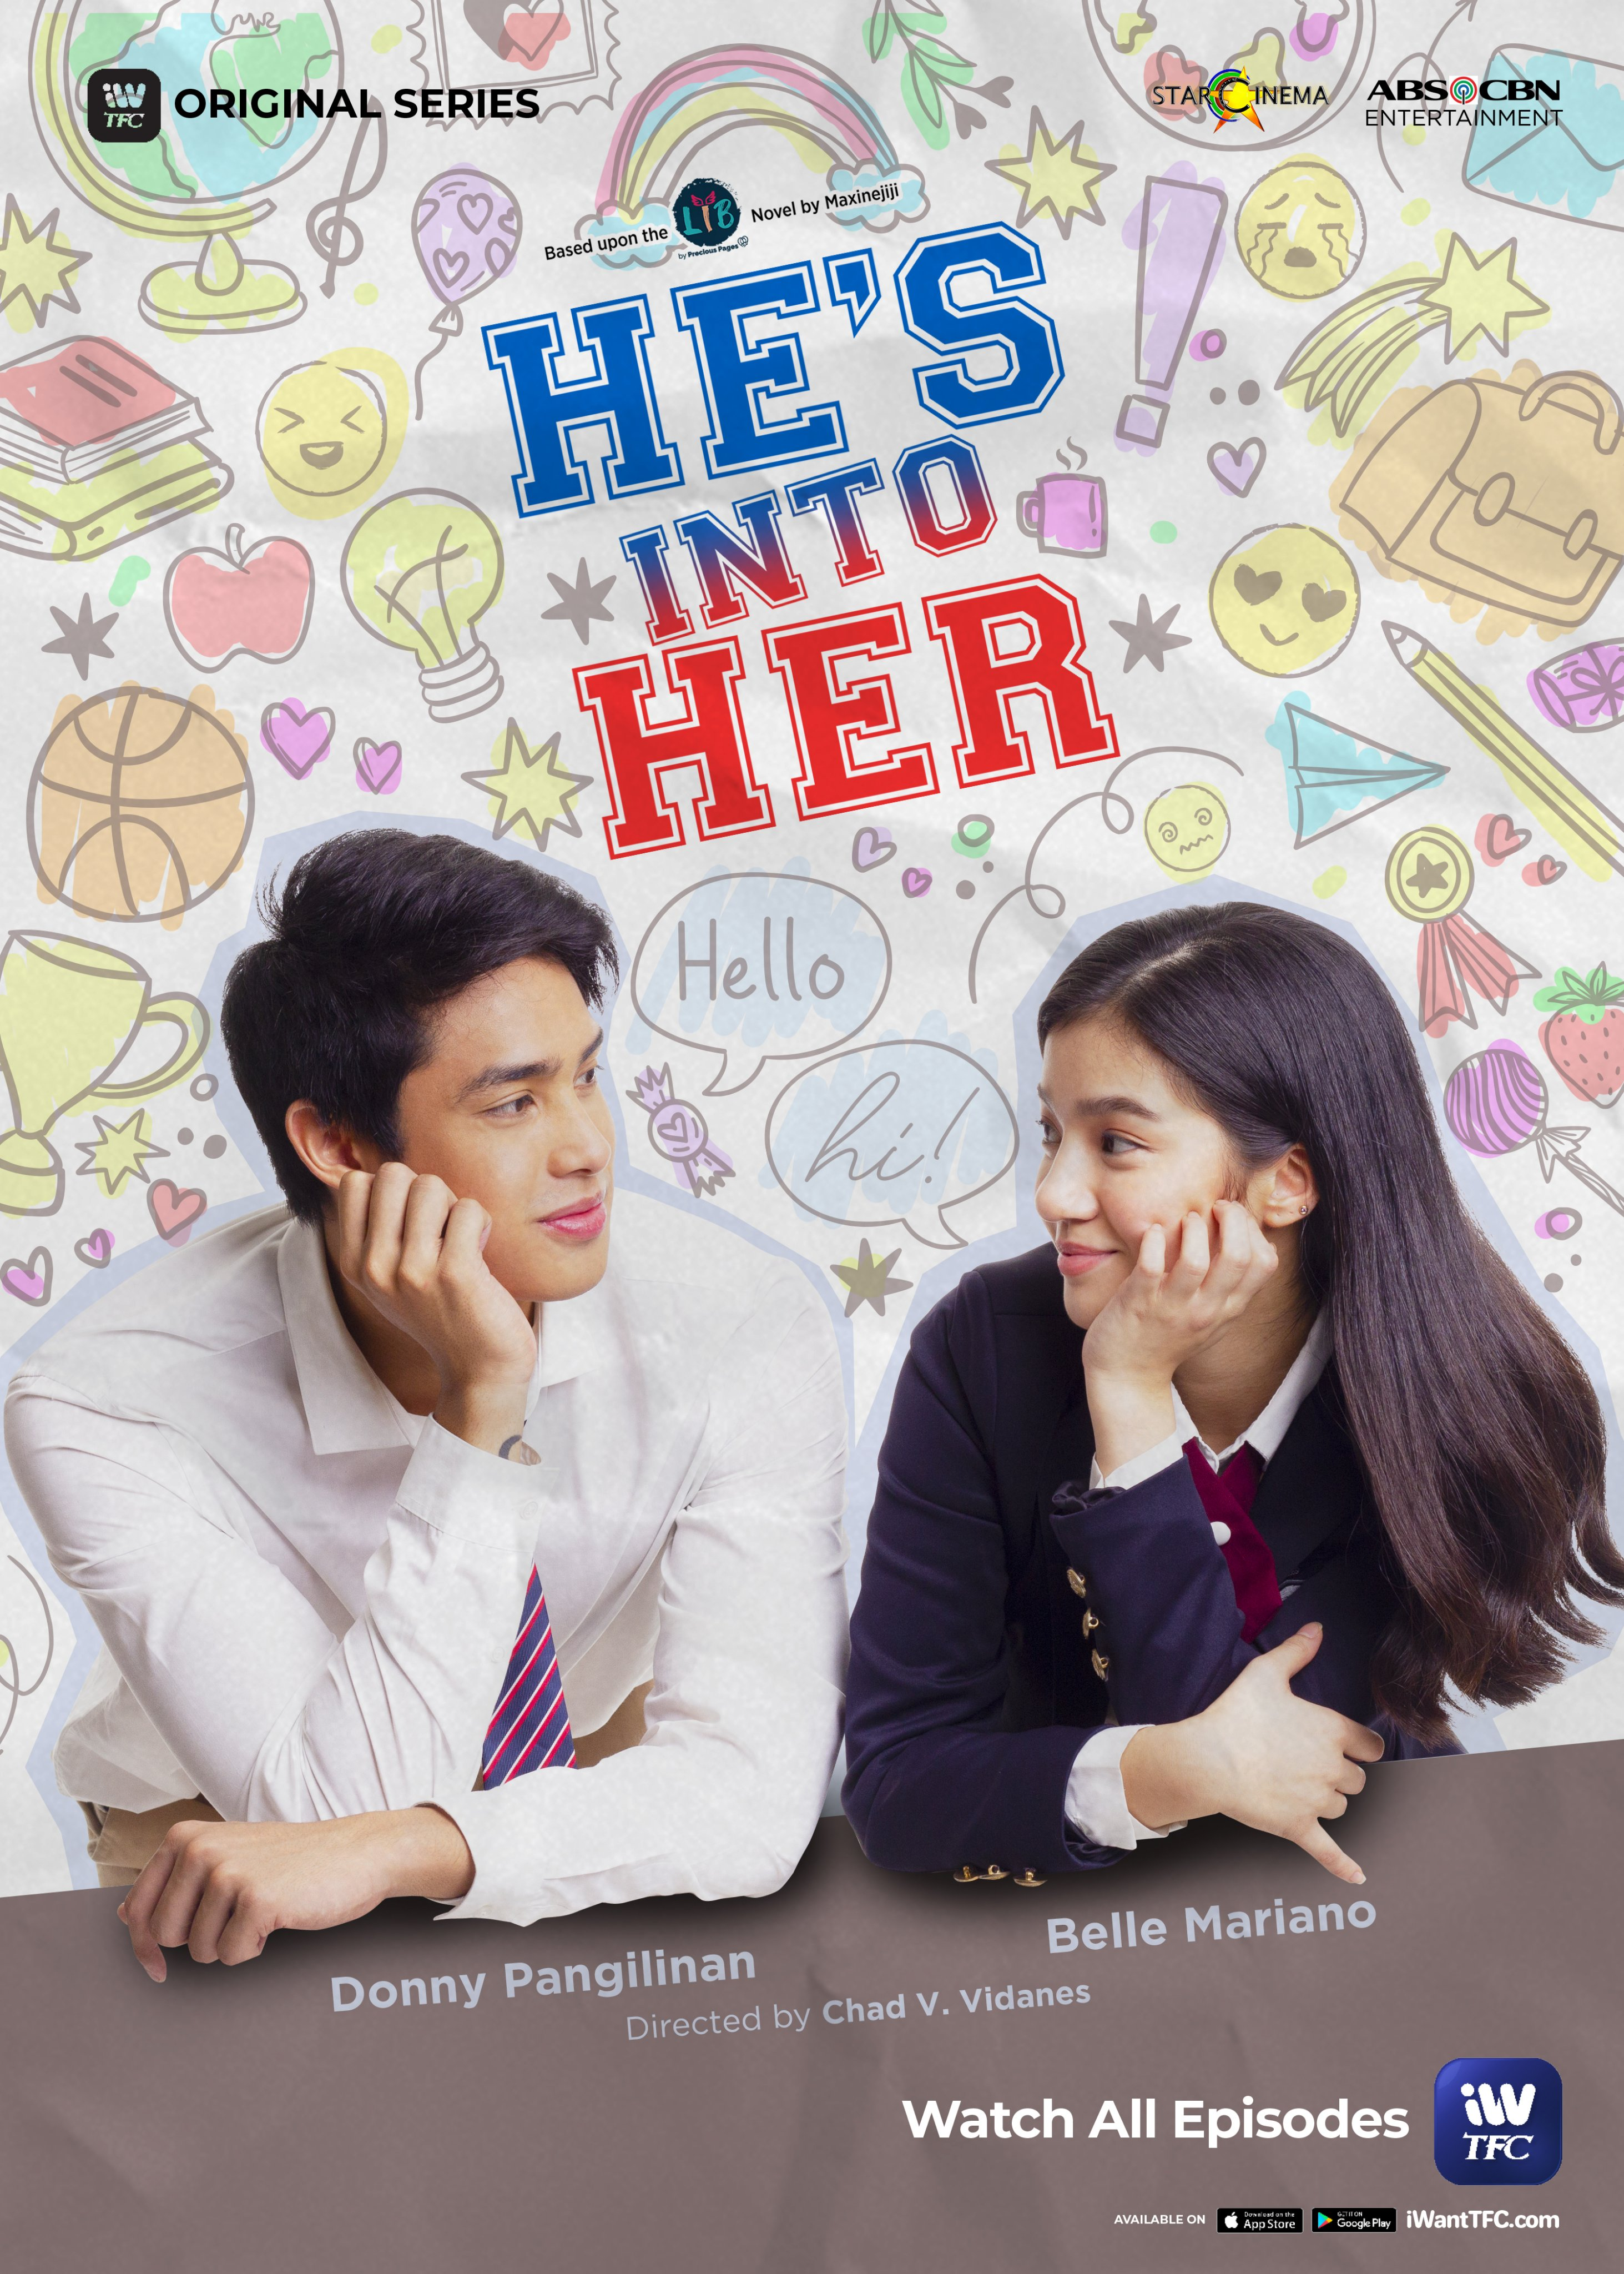 All episodes of He's Into Her are streaming for free in PH on iWantTFC (2)